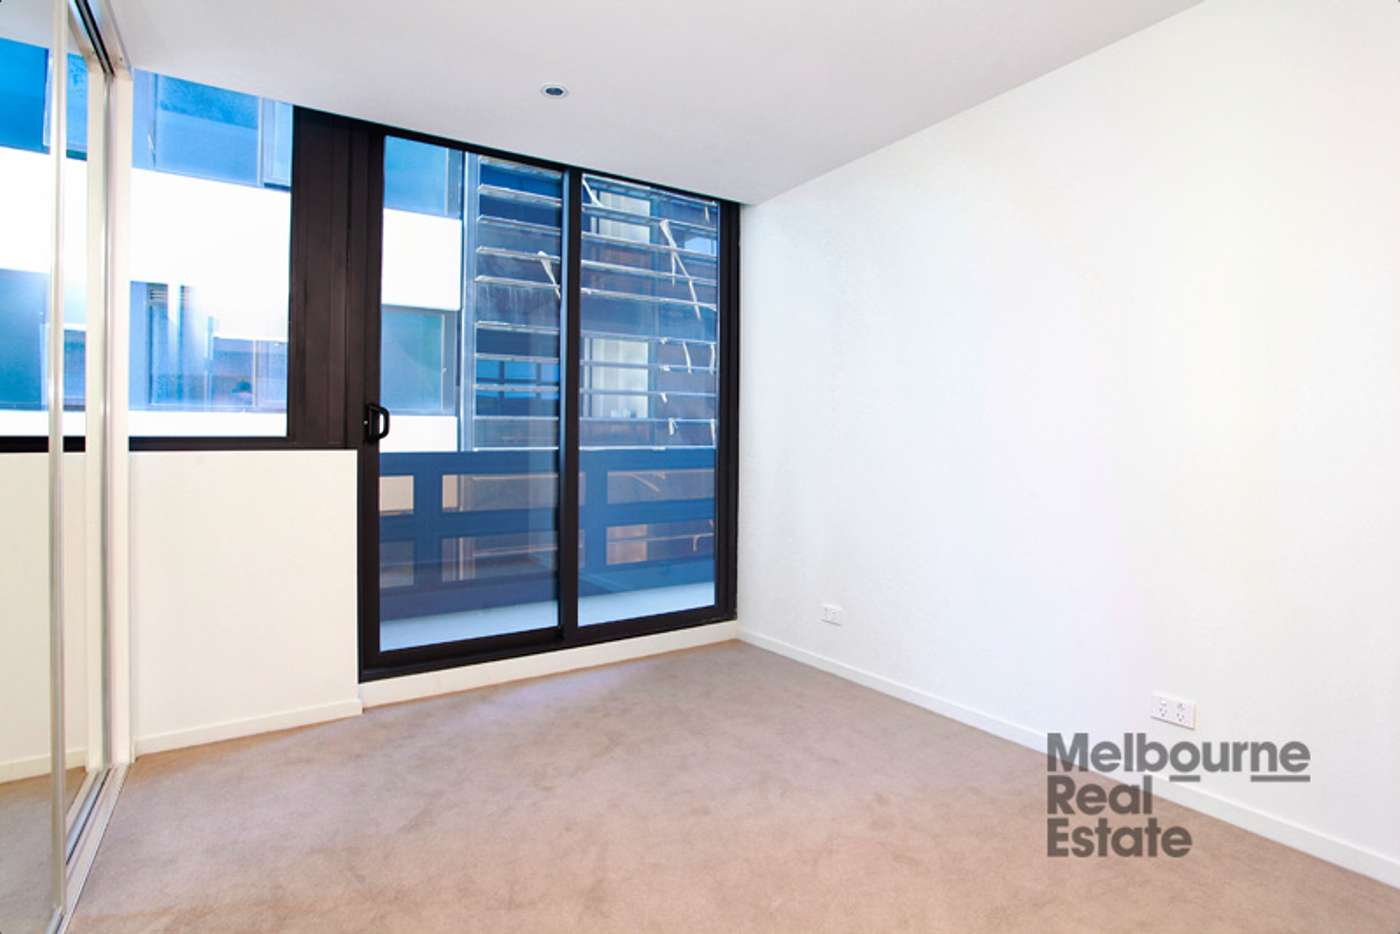 Sixth view of Homely apartment listing, 603/5 Sutherland Street, Melbourne VIC 3000